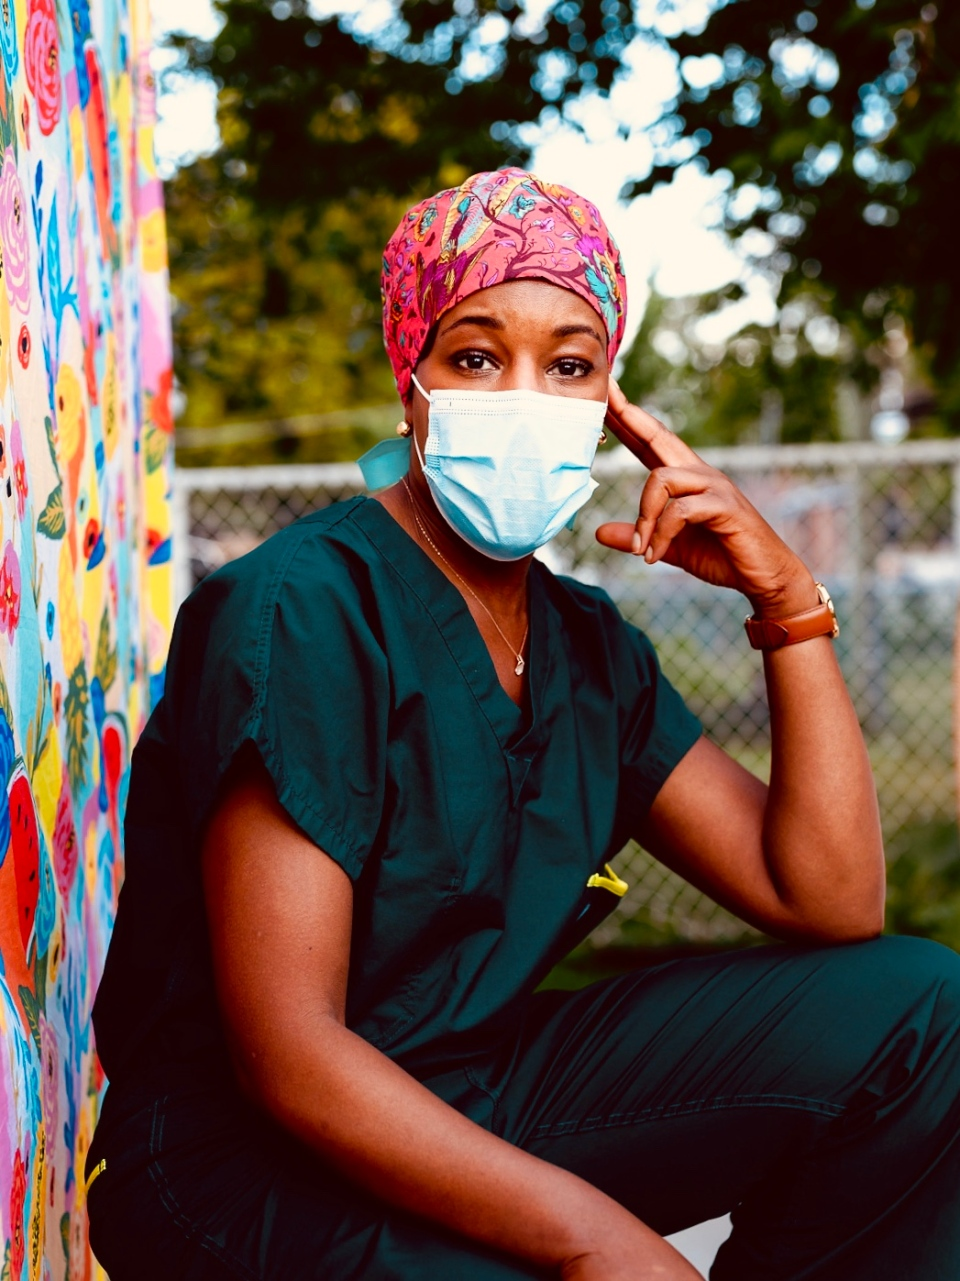 Anesthesiologist Eding Mvilongo feels stereotypes need to change as patients often ask when the doctor will arrive when she introduces herself. SOURCE Karene Isabelle